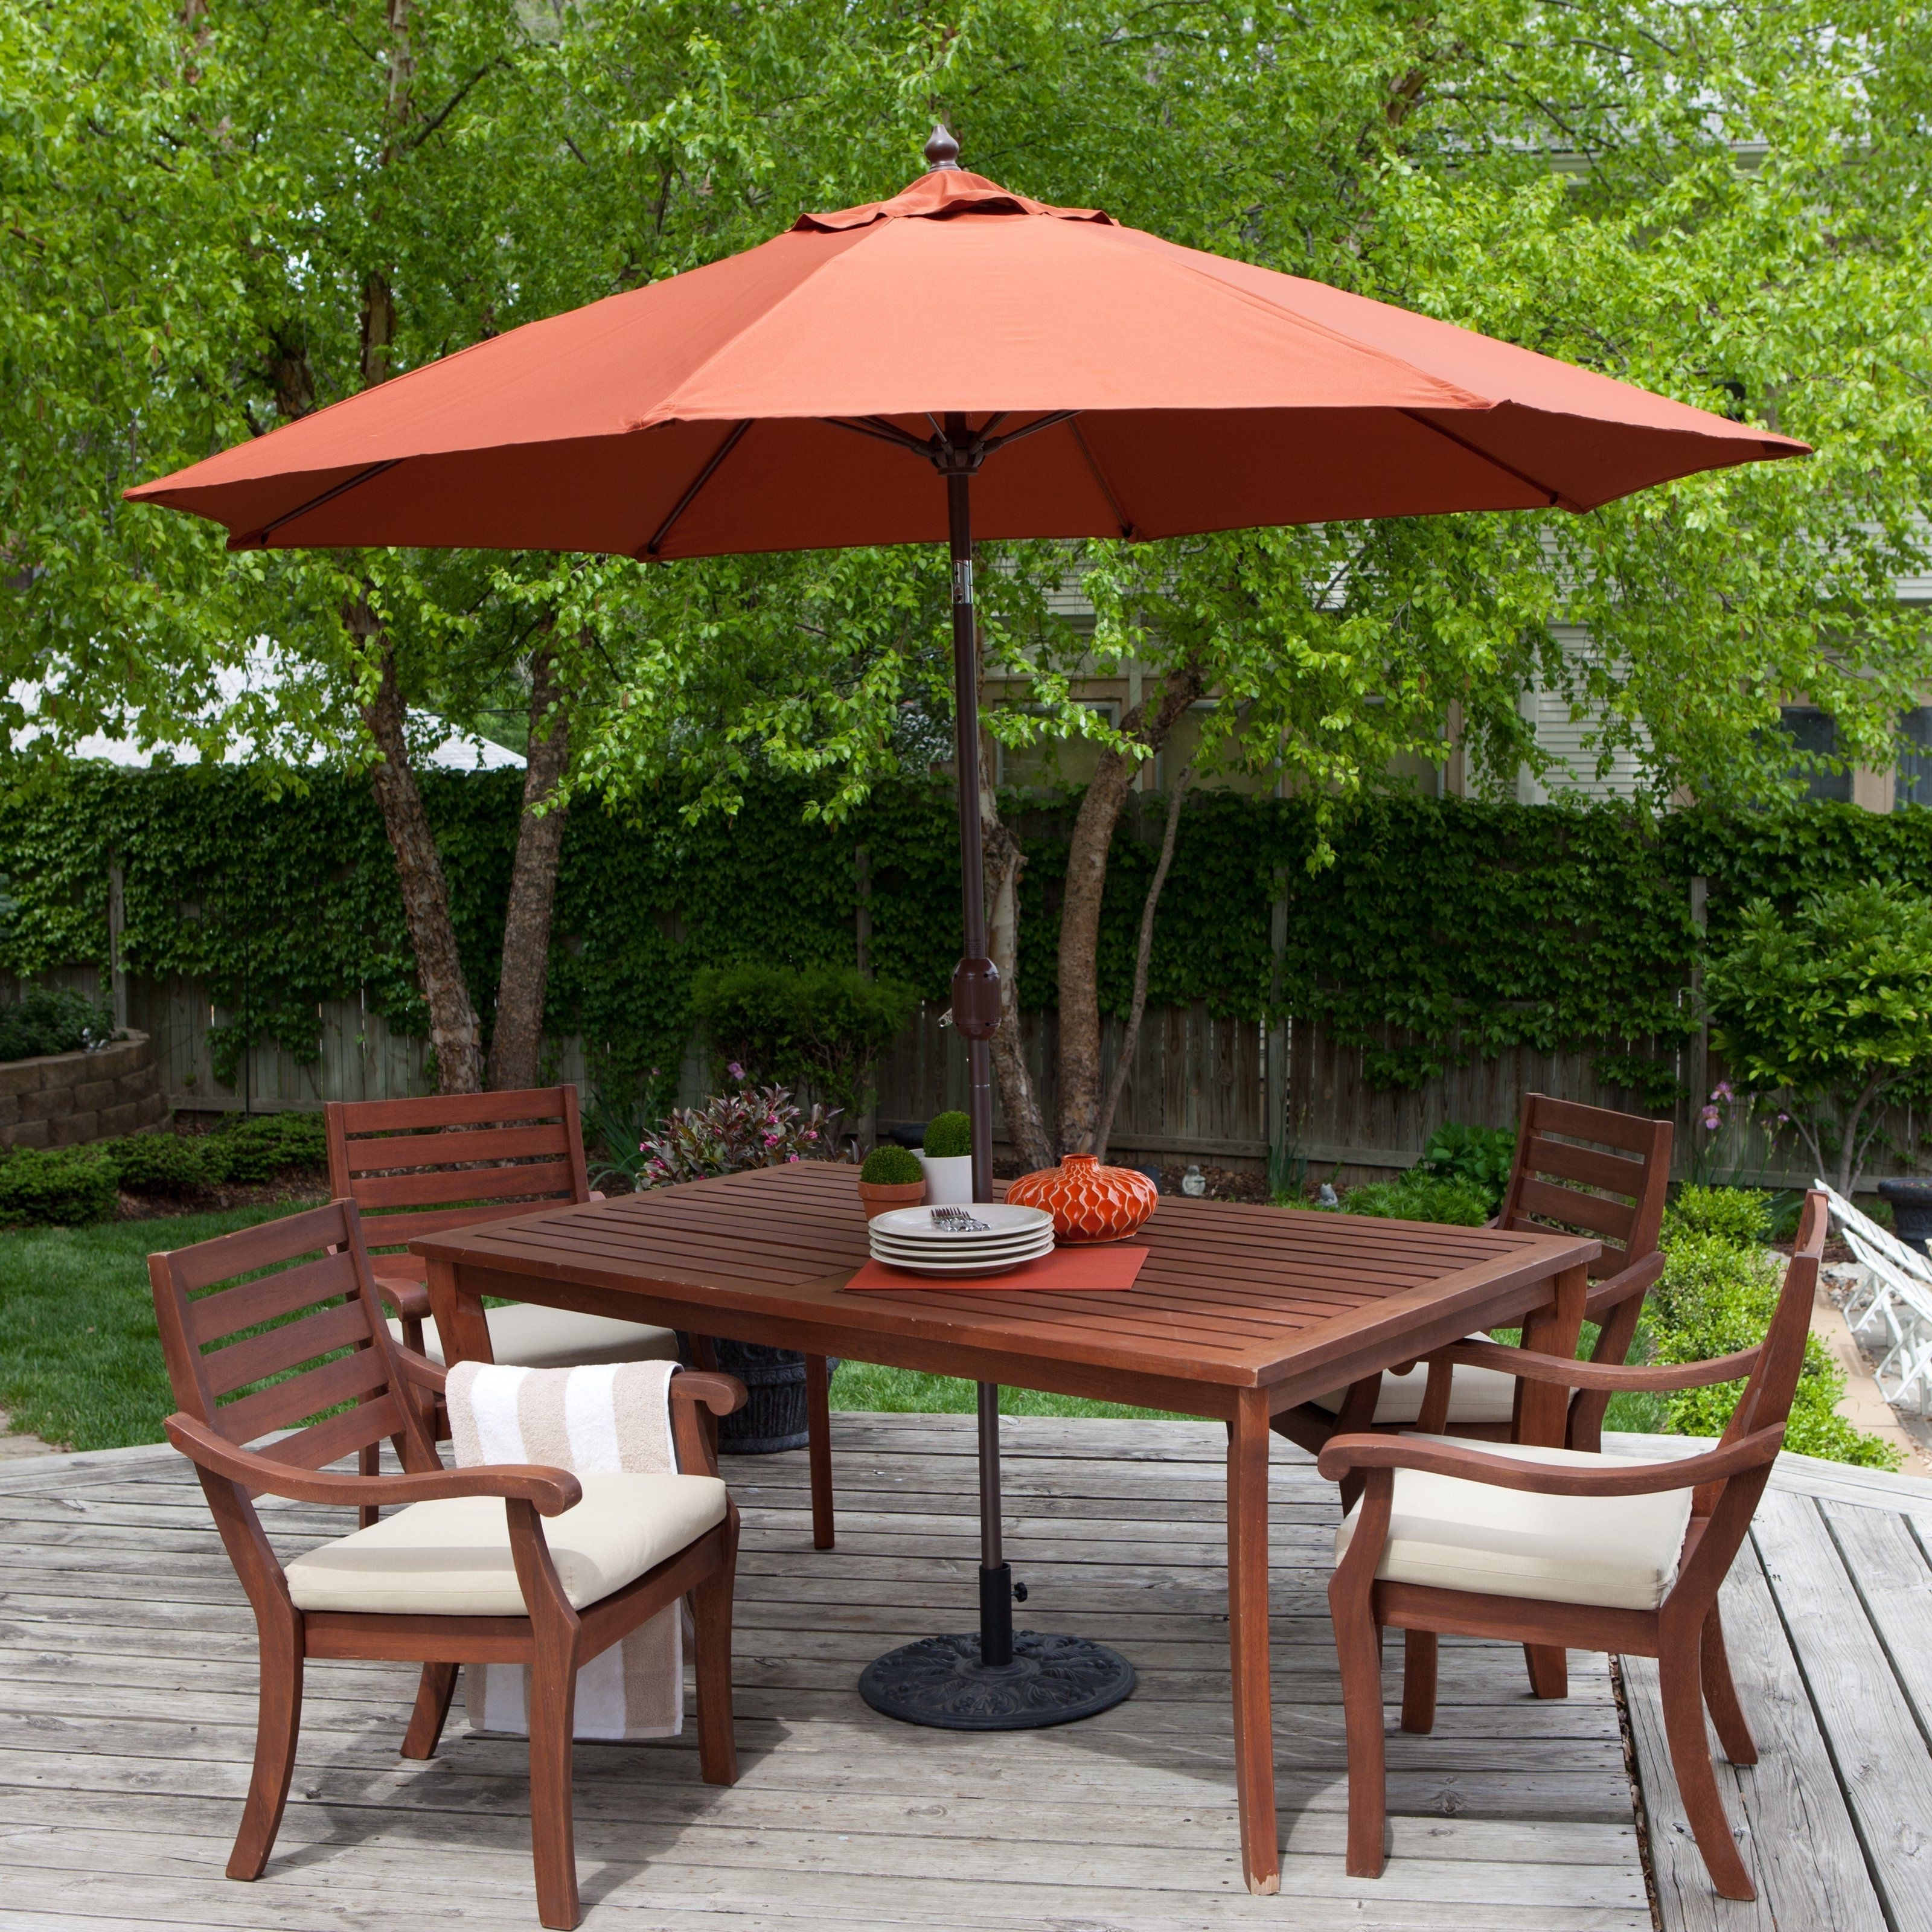 2018 Commercial Patio Umbrellas Wind Resistant Awesome Eclipse Collection Within Eclipse Patio Umbrellas (View 1 of 20)